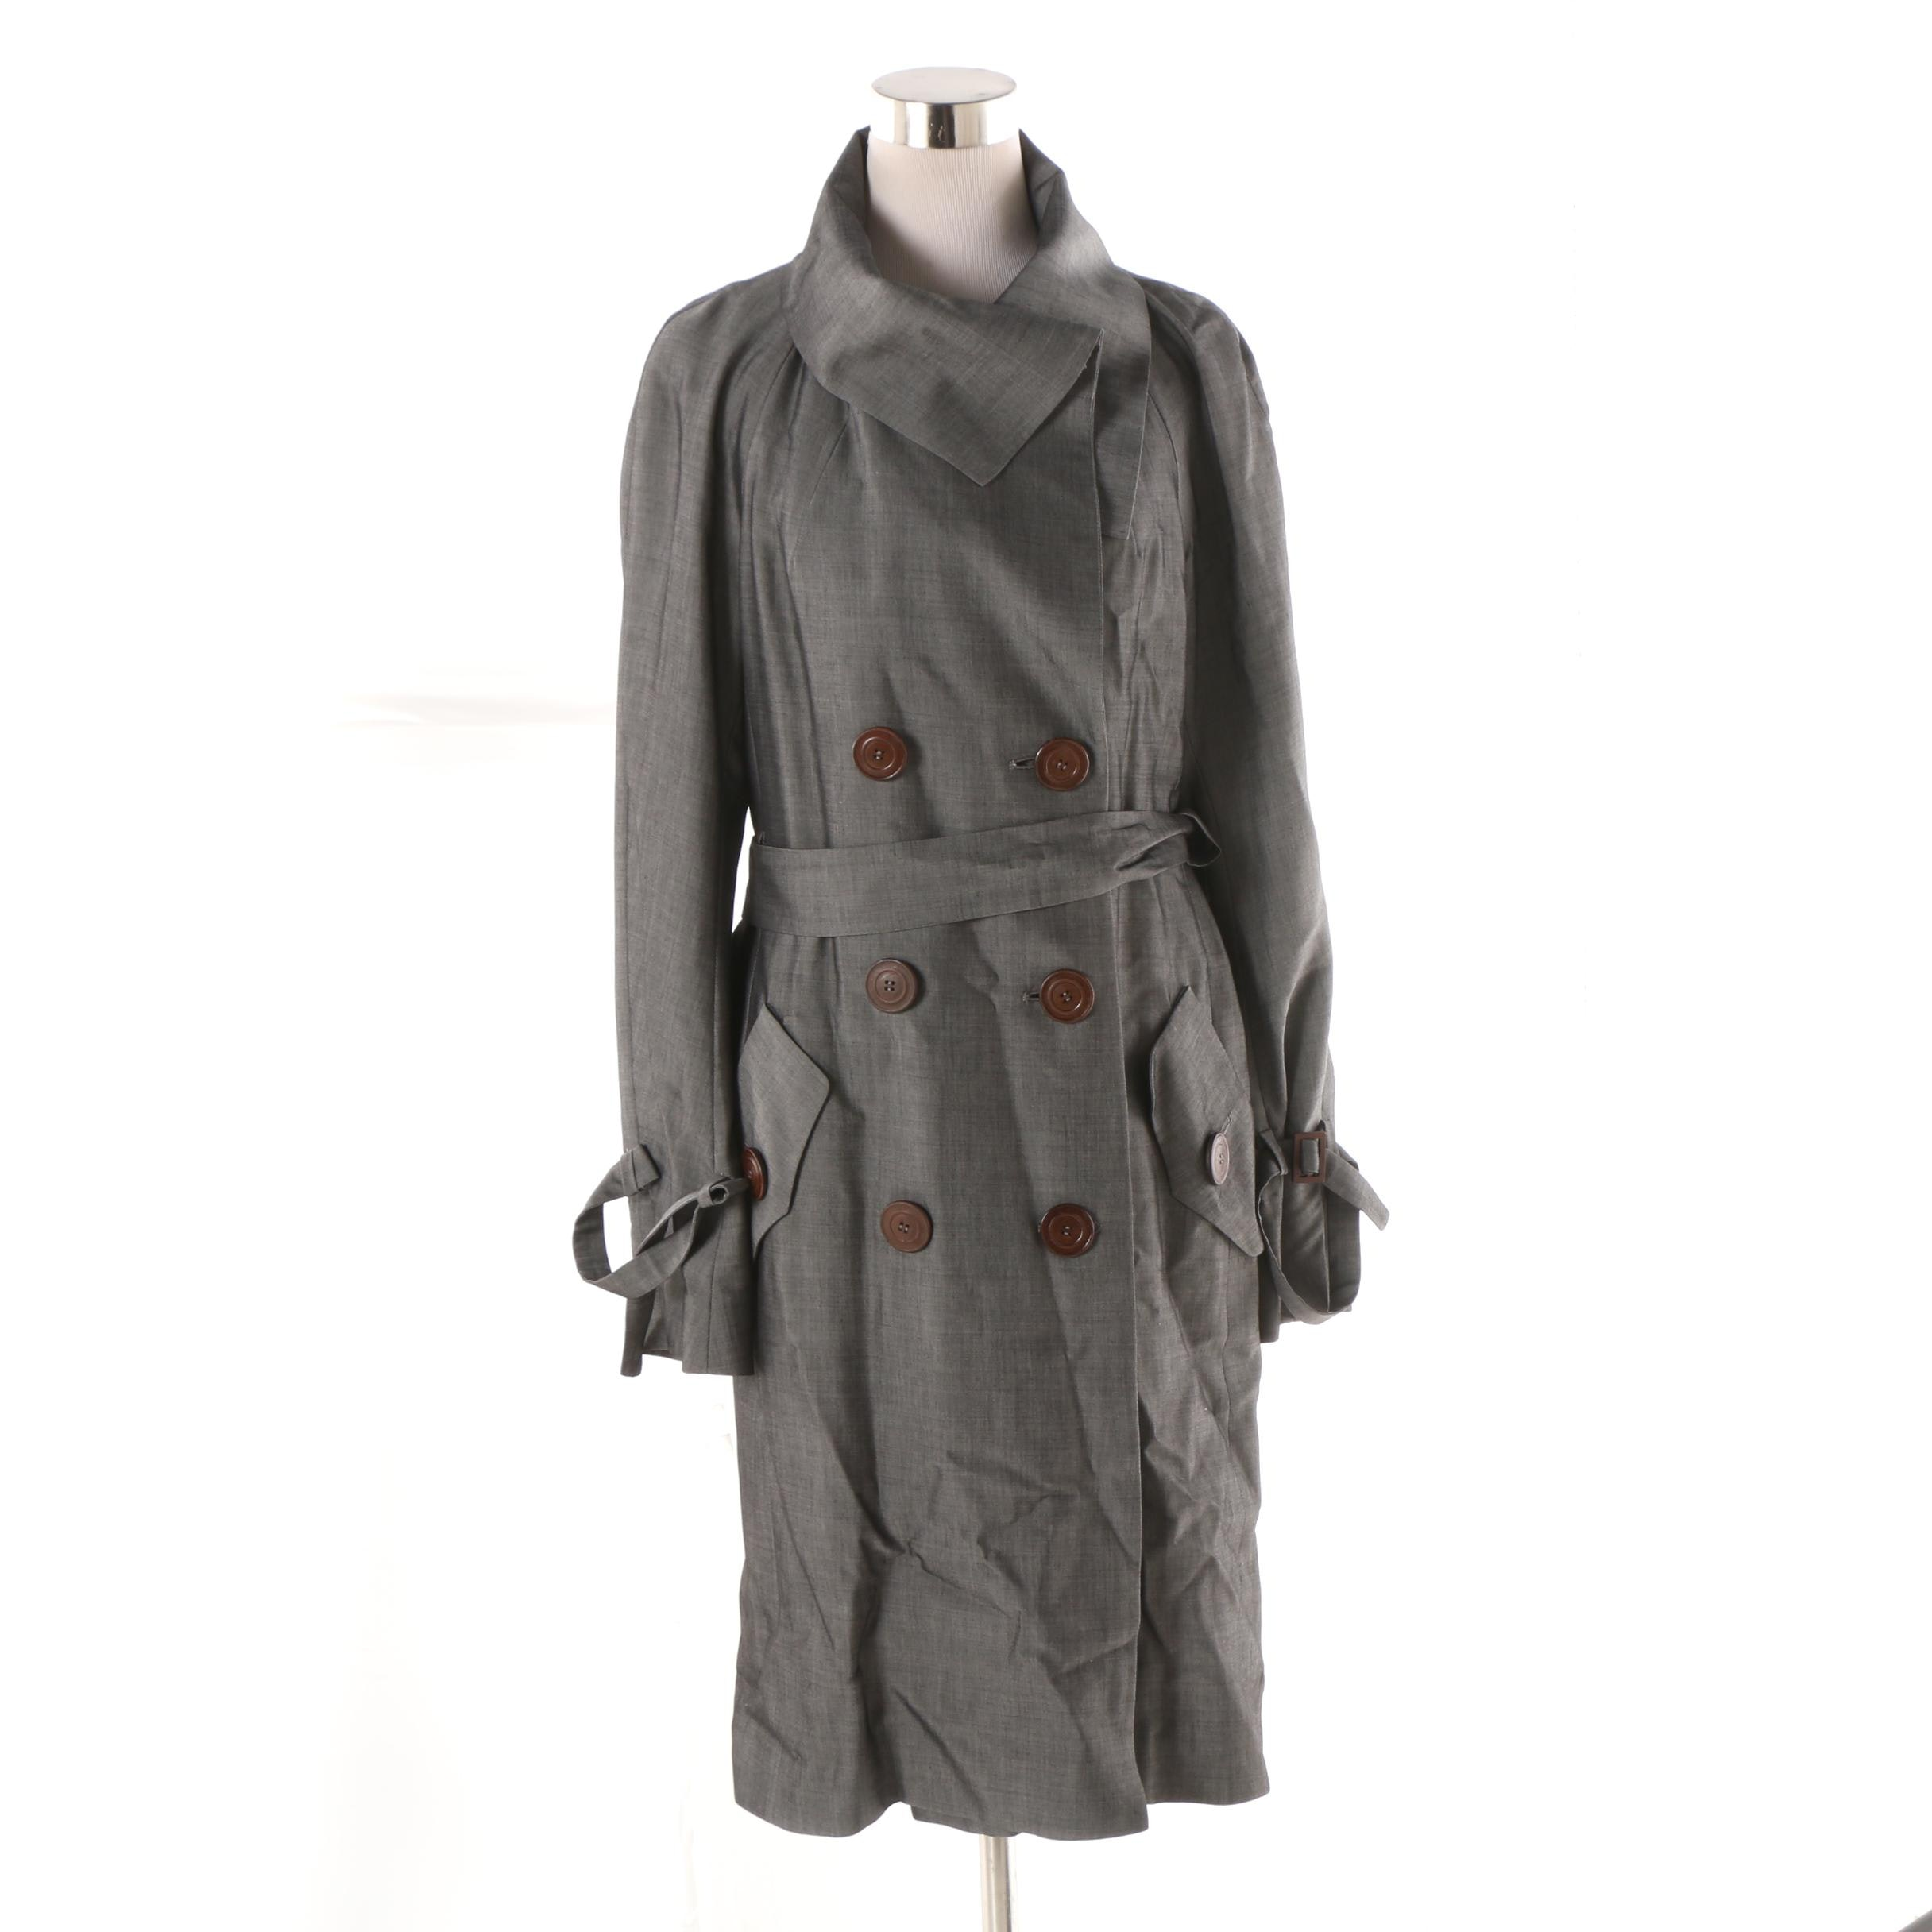 Charles Chang-Lima Grey Double-Breasted Overcoat and Skirt Set